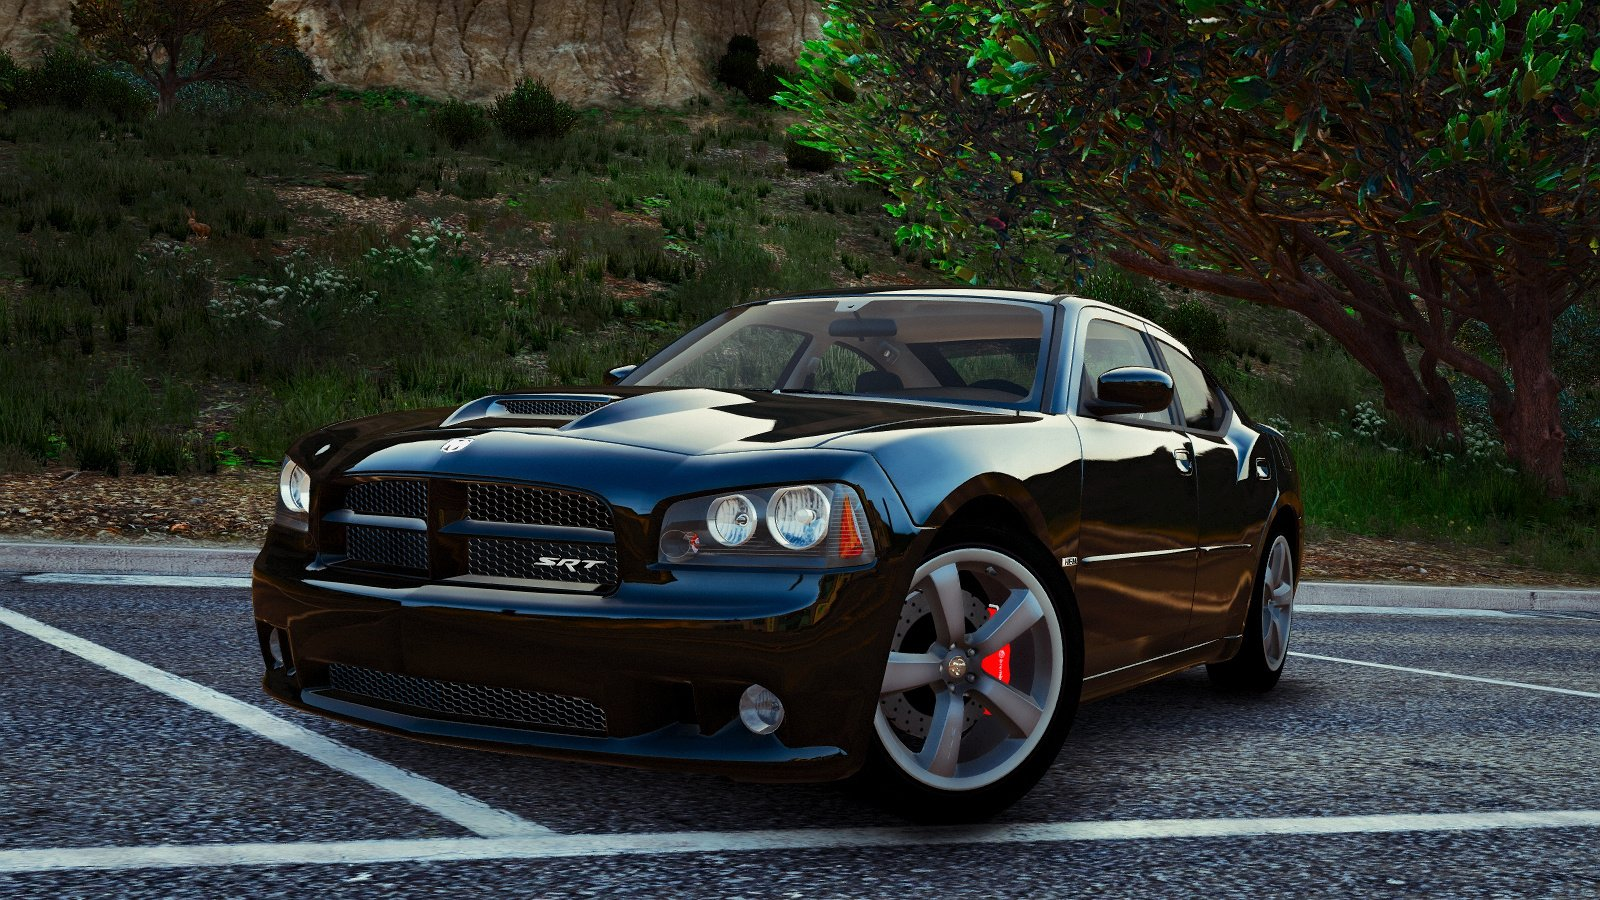 2006 Dodge Charger SRT8 - GTA5-Mods.com